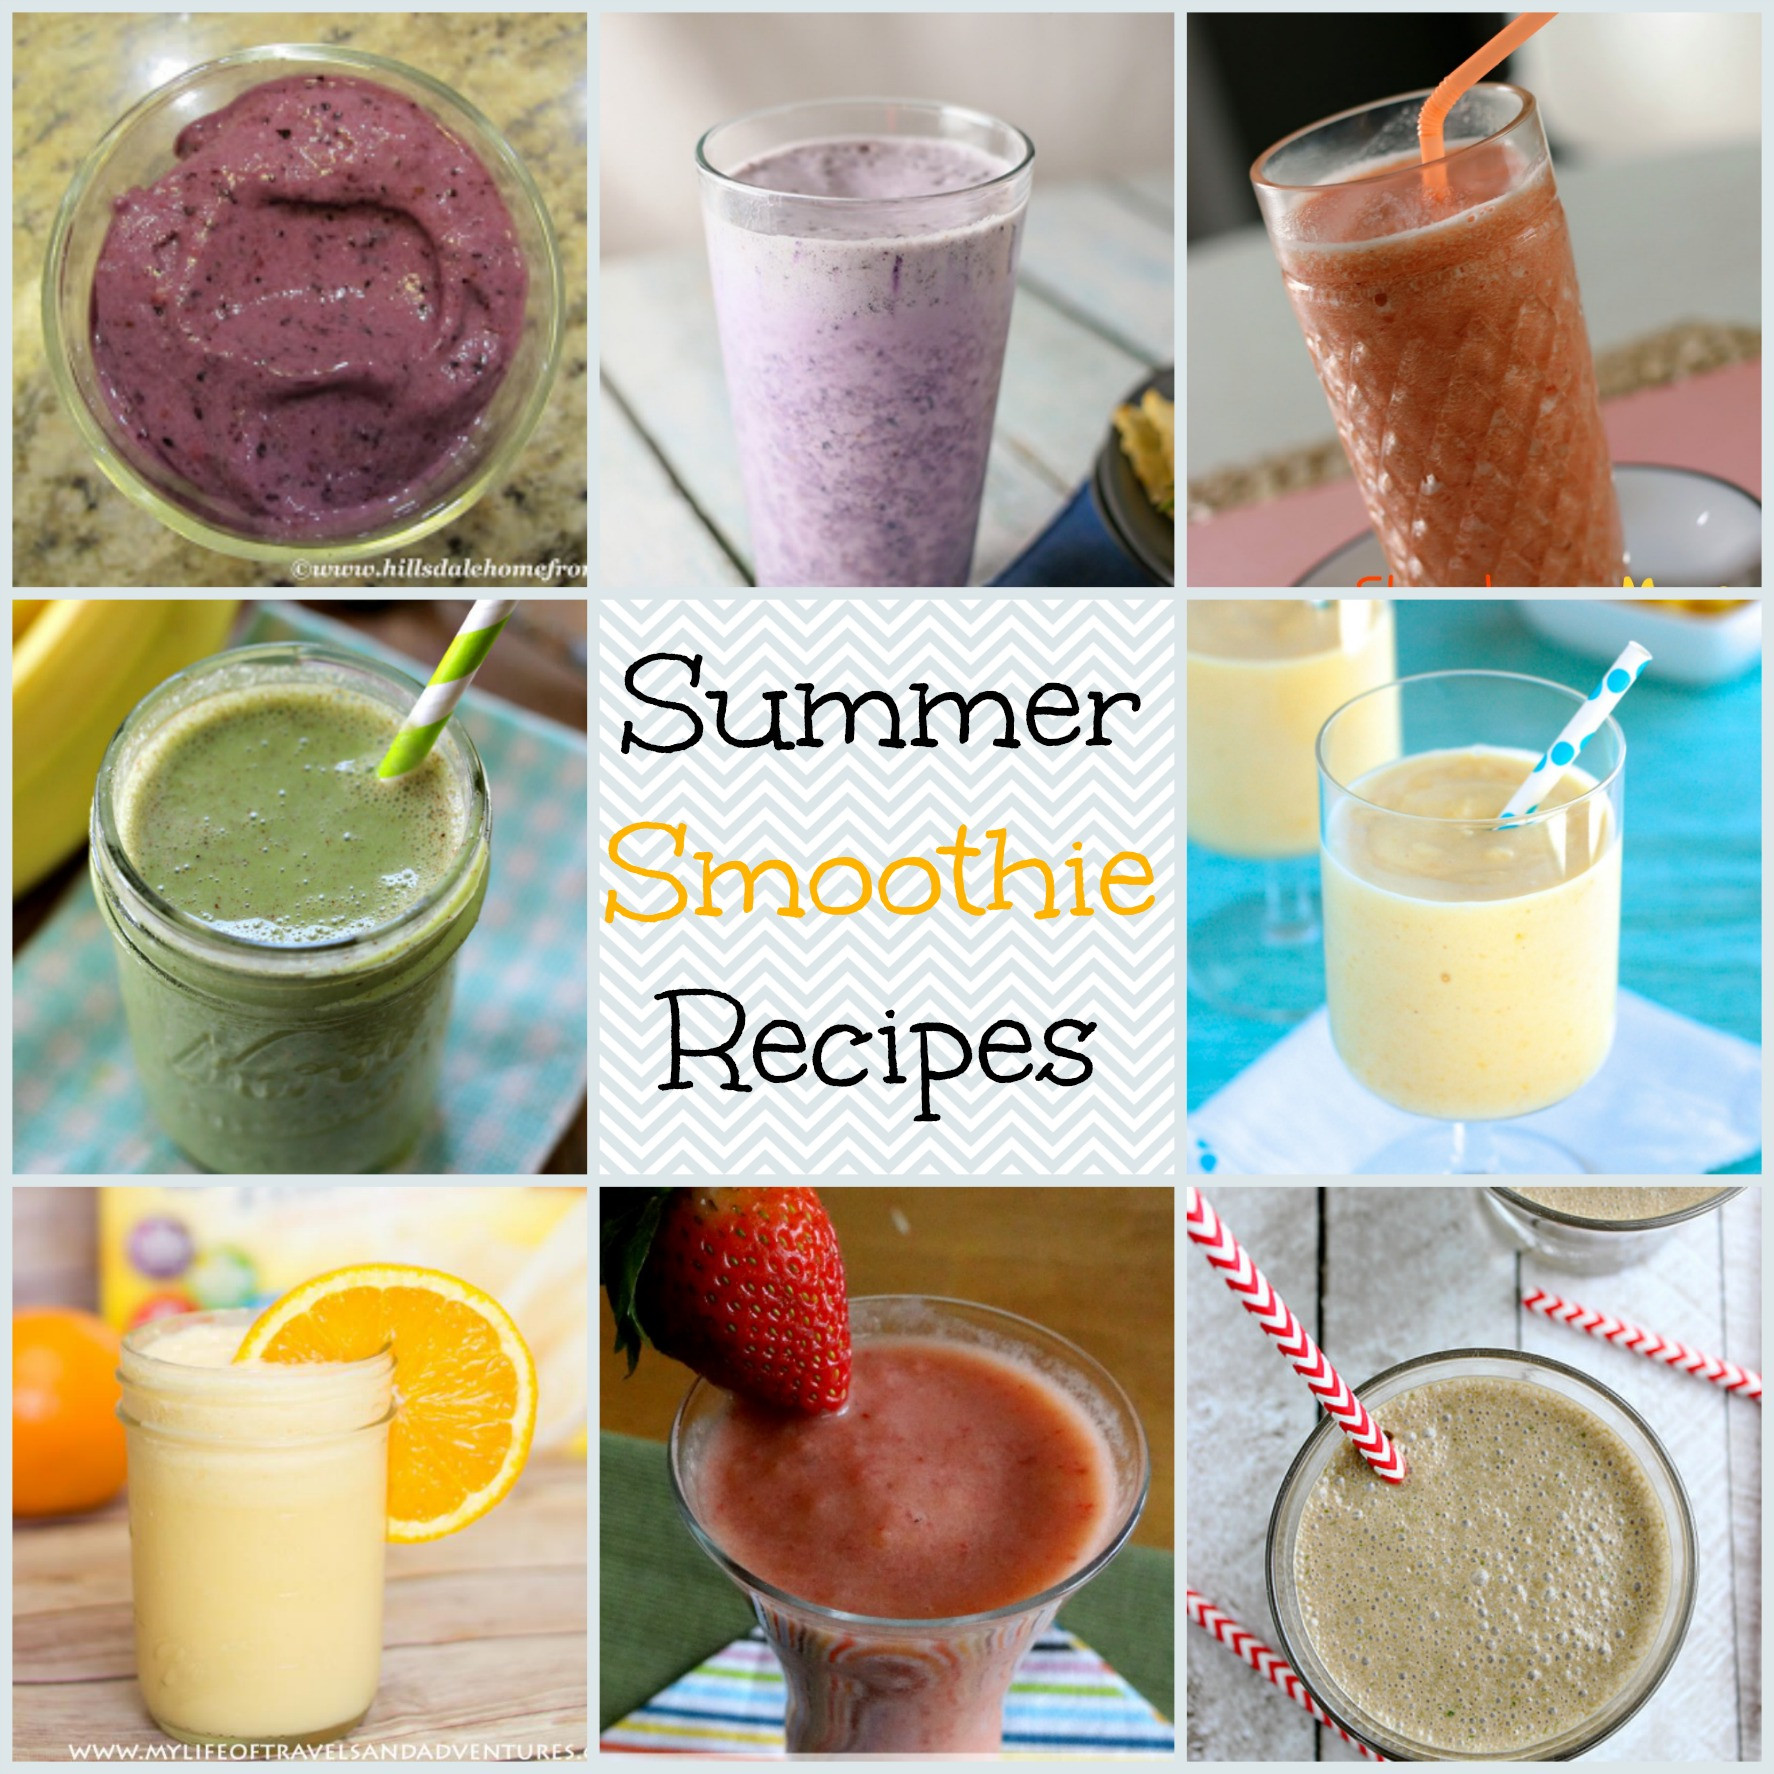 Summer Smoothies Recipes  Summer Smoothie Recipes Family Fun Journal